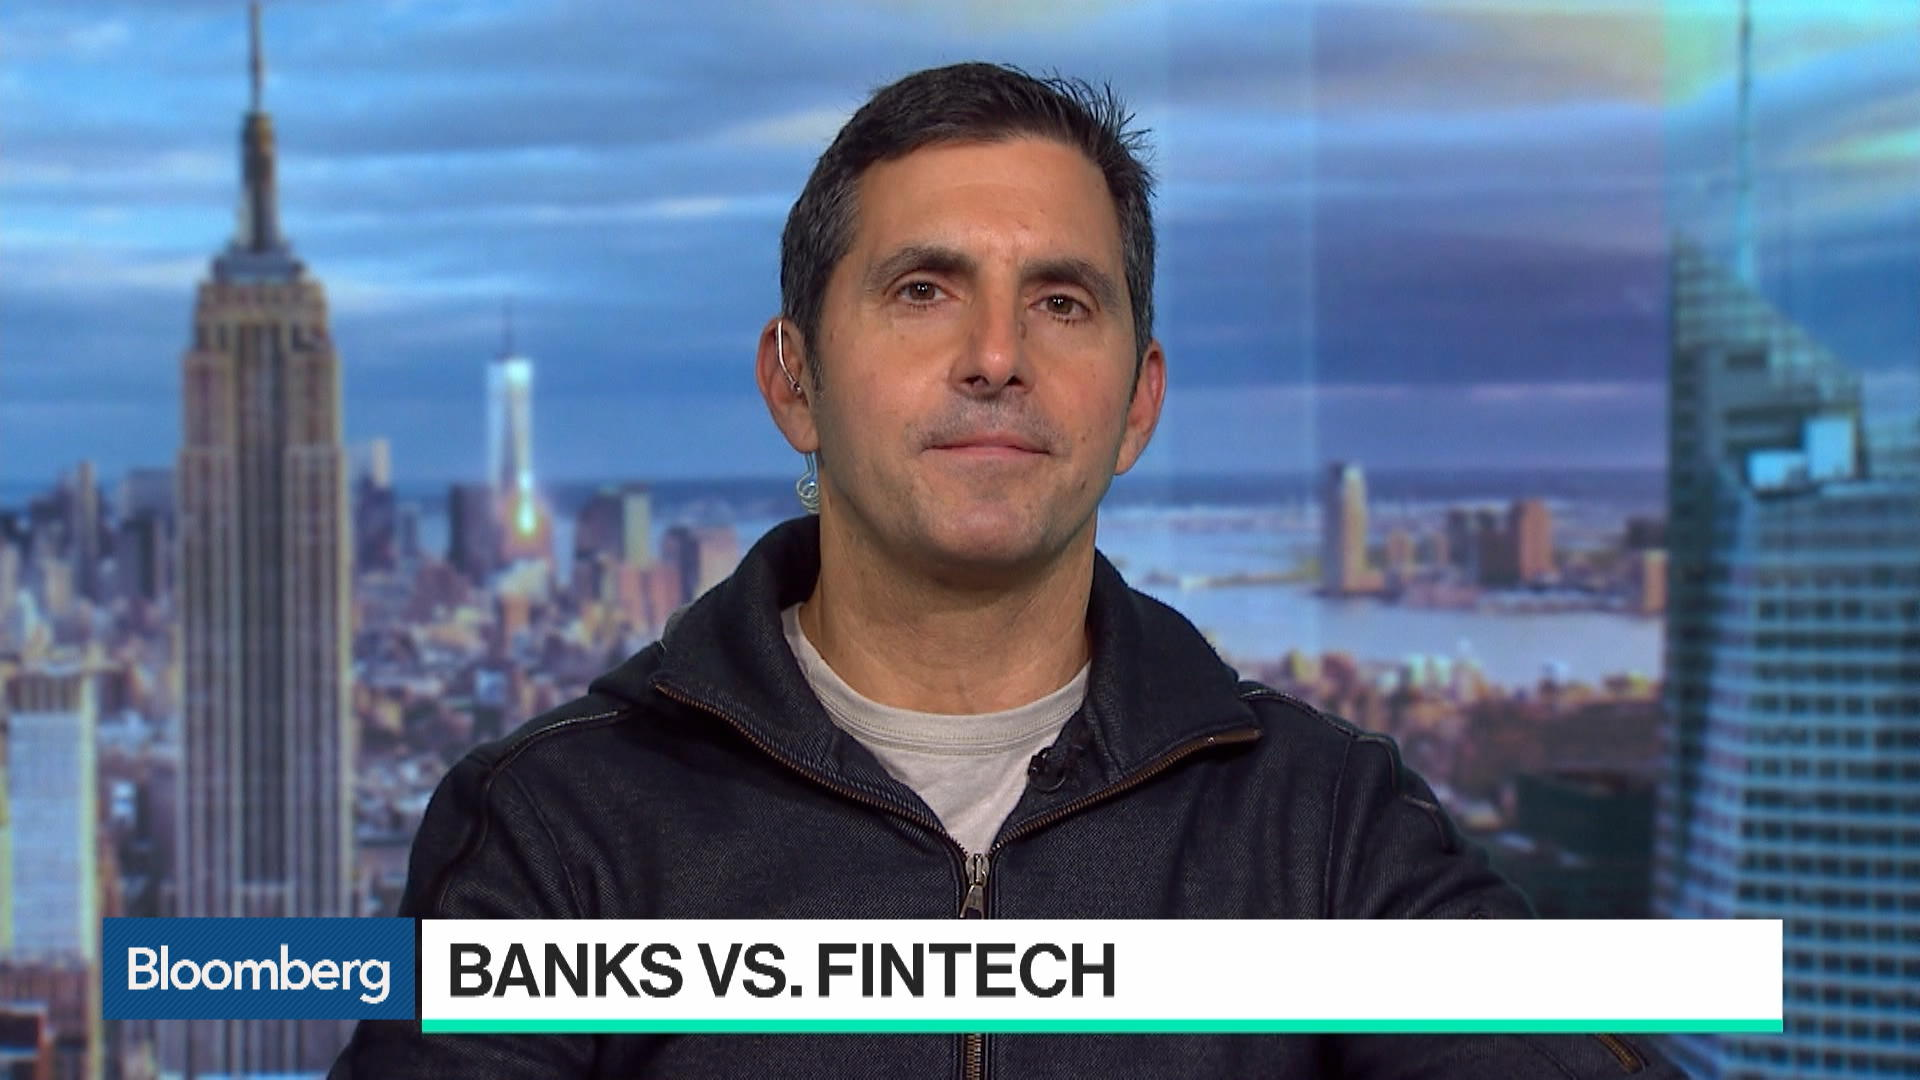 Banks Are on Cusp of Biggest Tech Impact in History: Analyst Mike Mayo